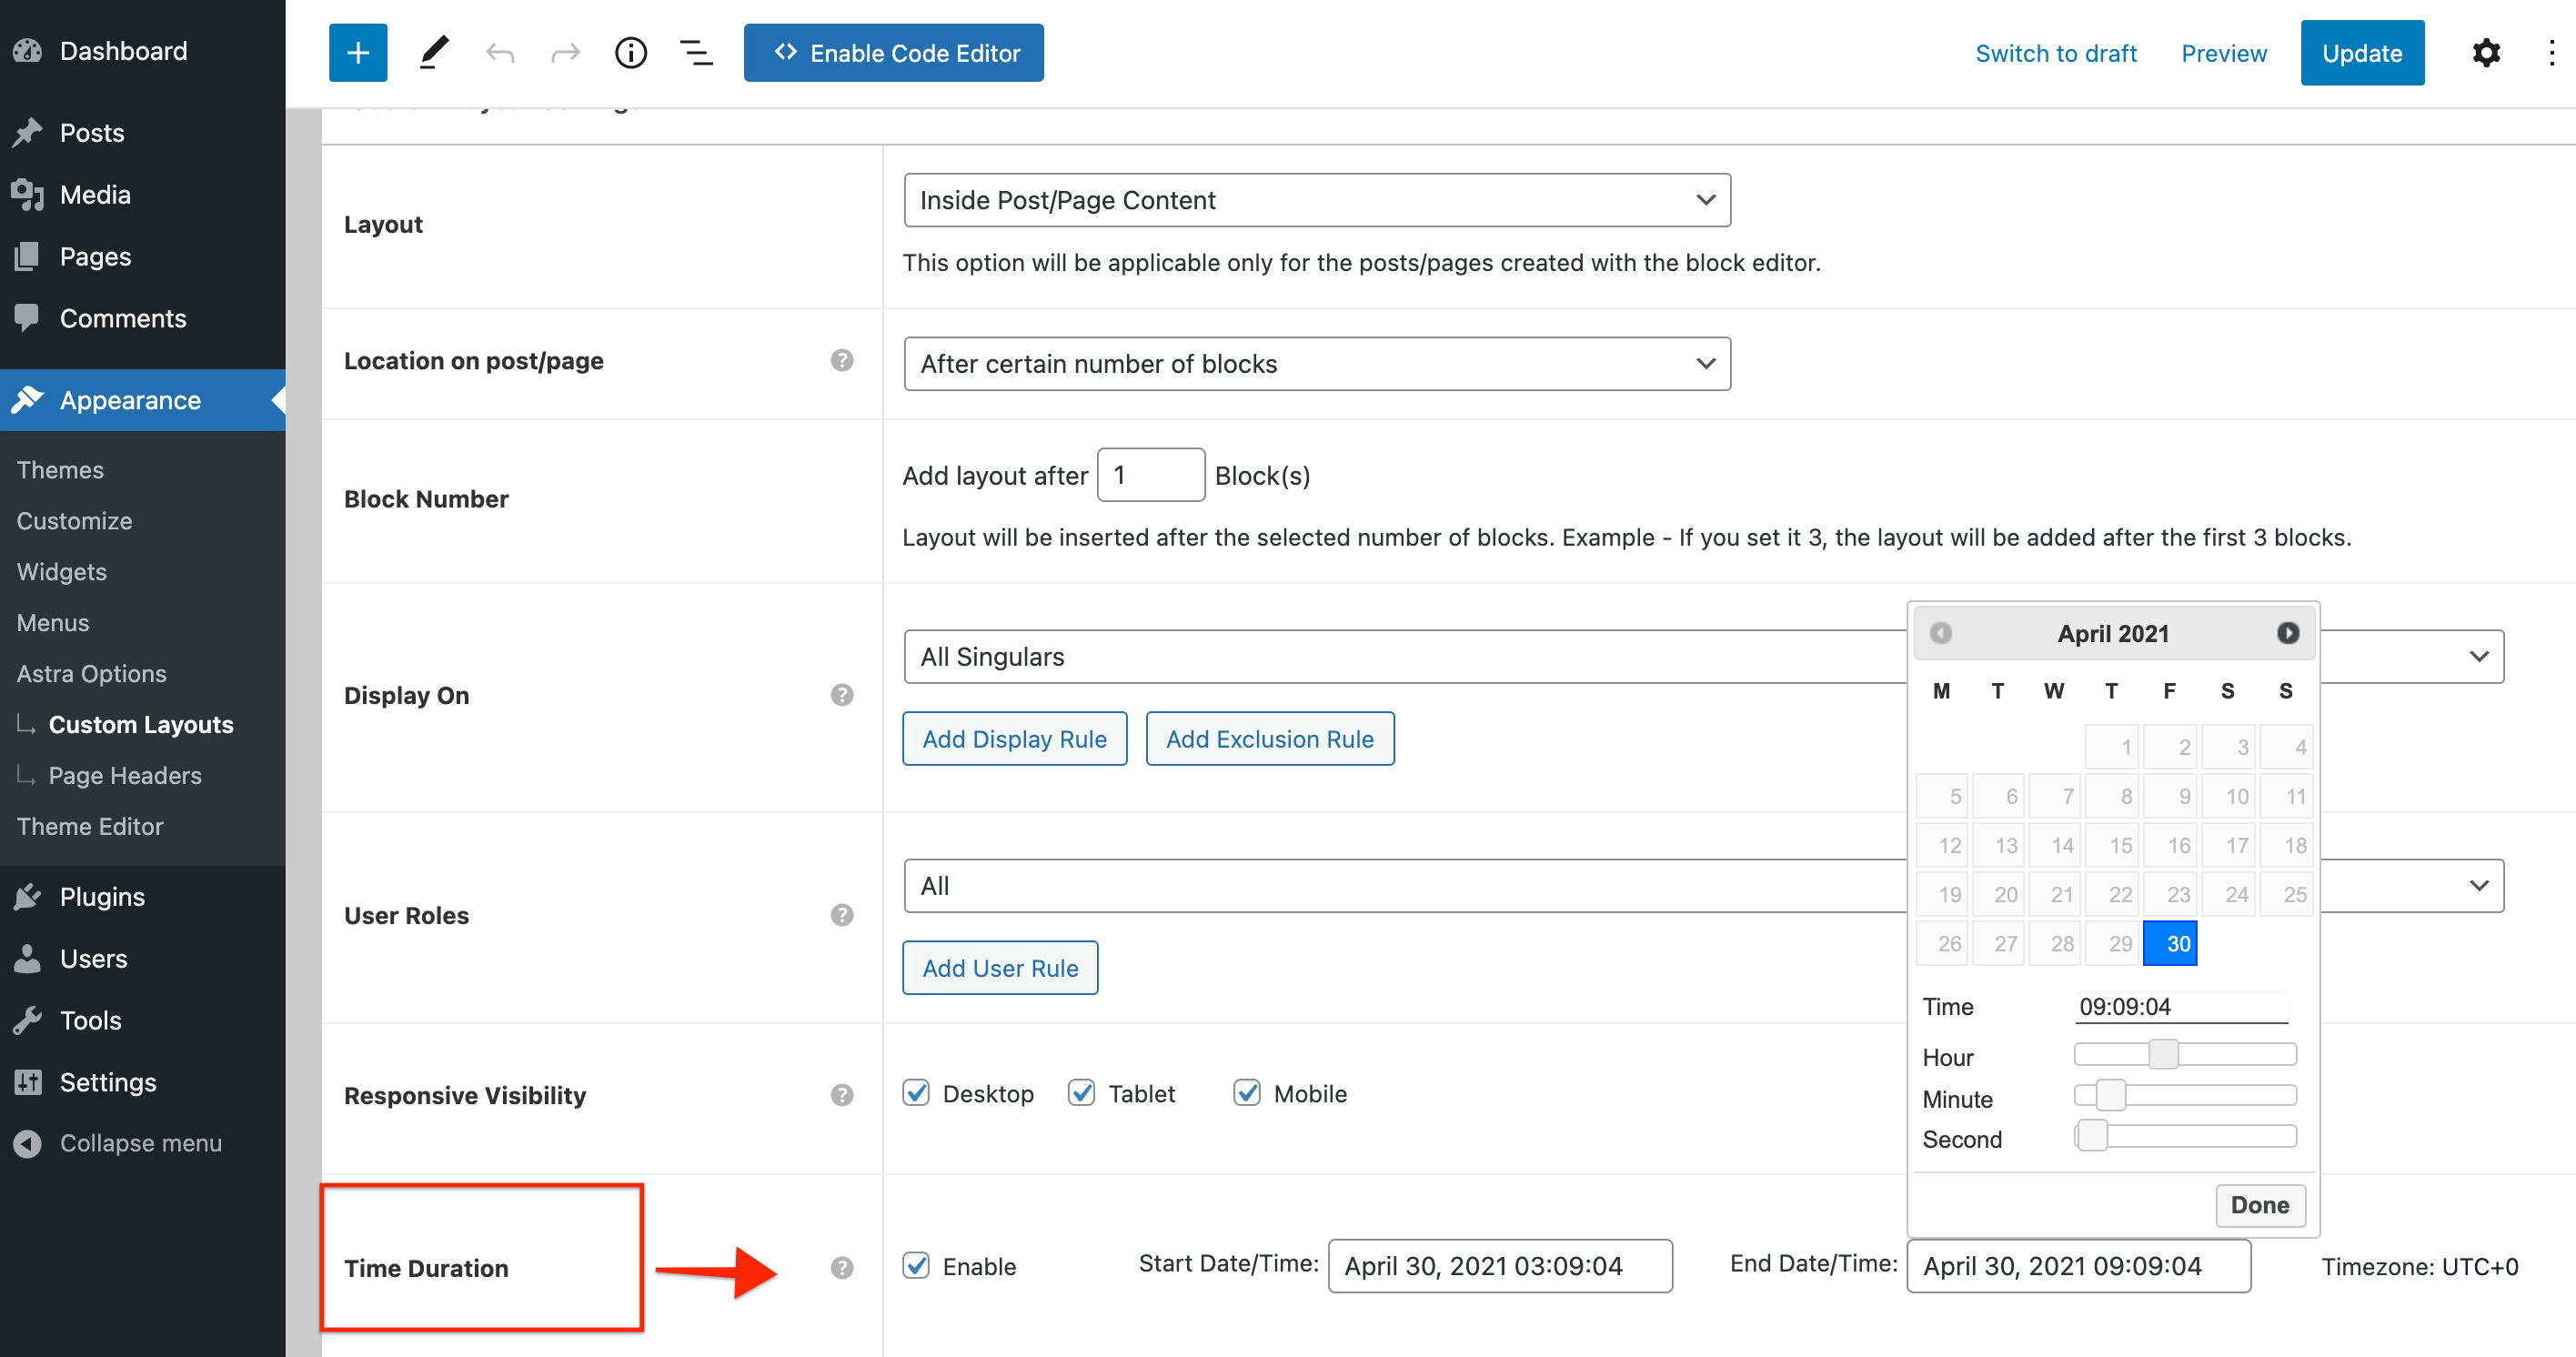 Custom Layouts - Time Duration Option